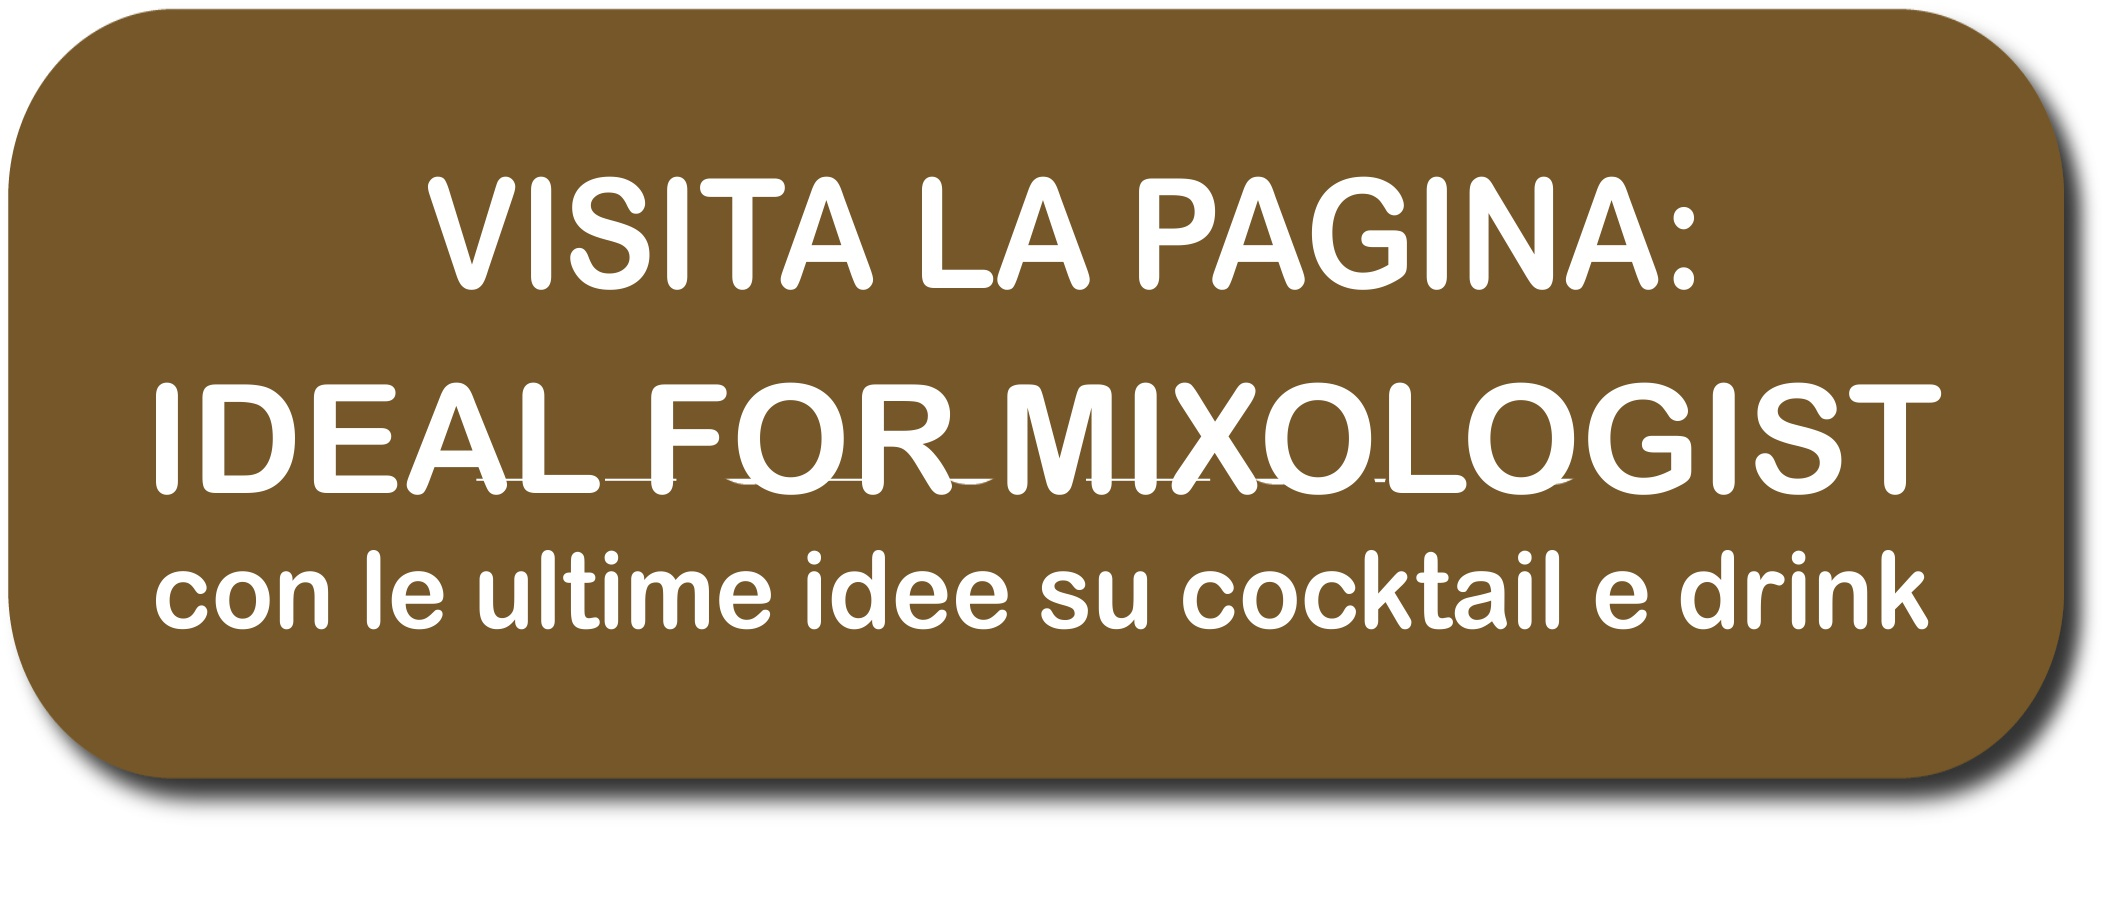 ideal for mixologist